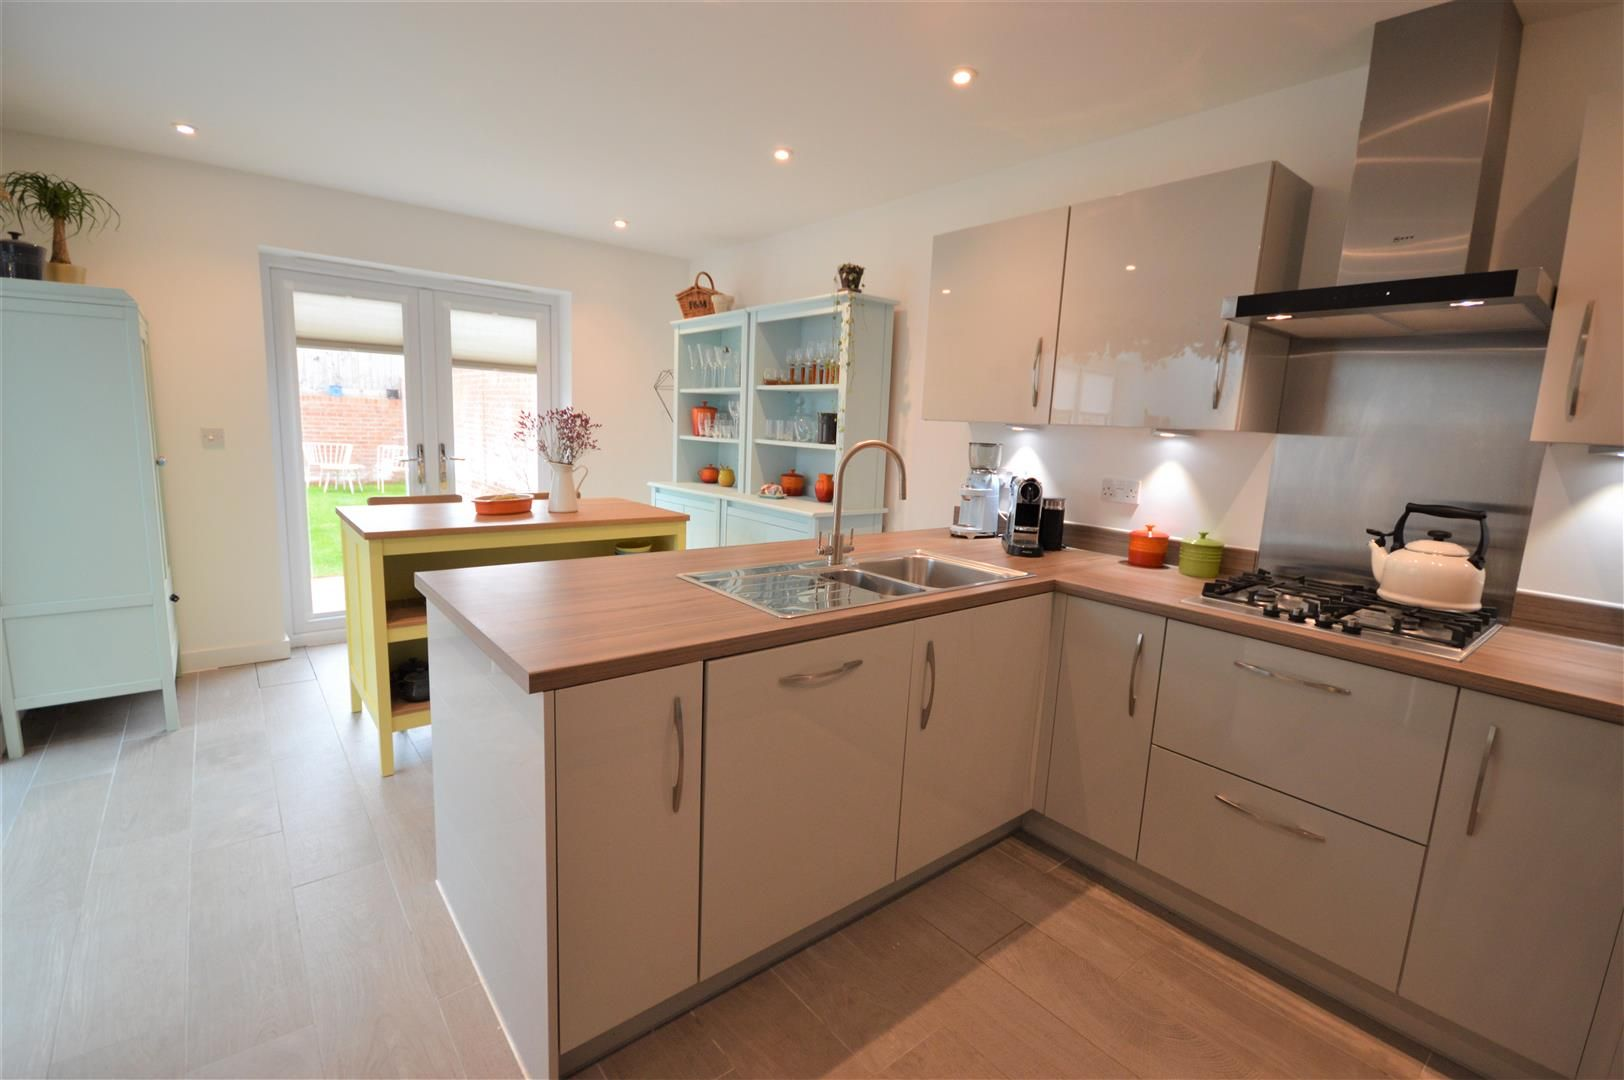 5 bed detached for sale in Weobley 4